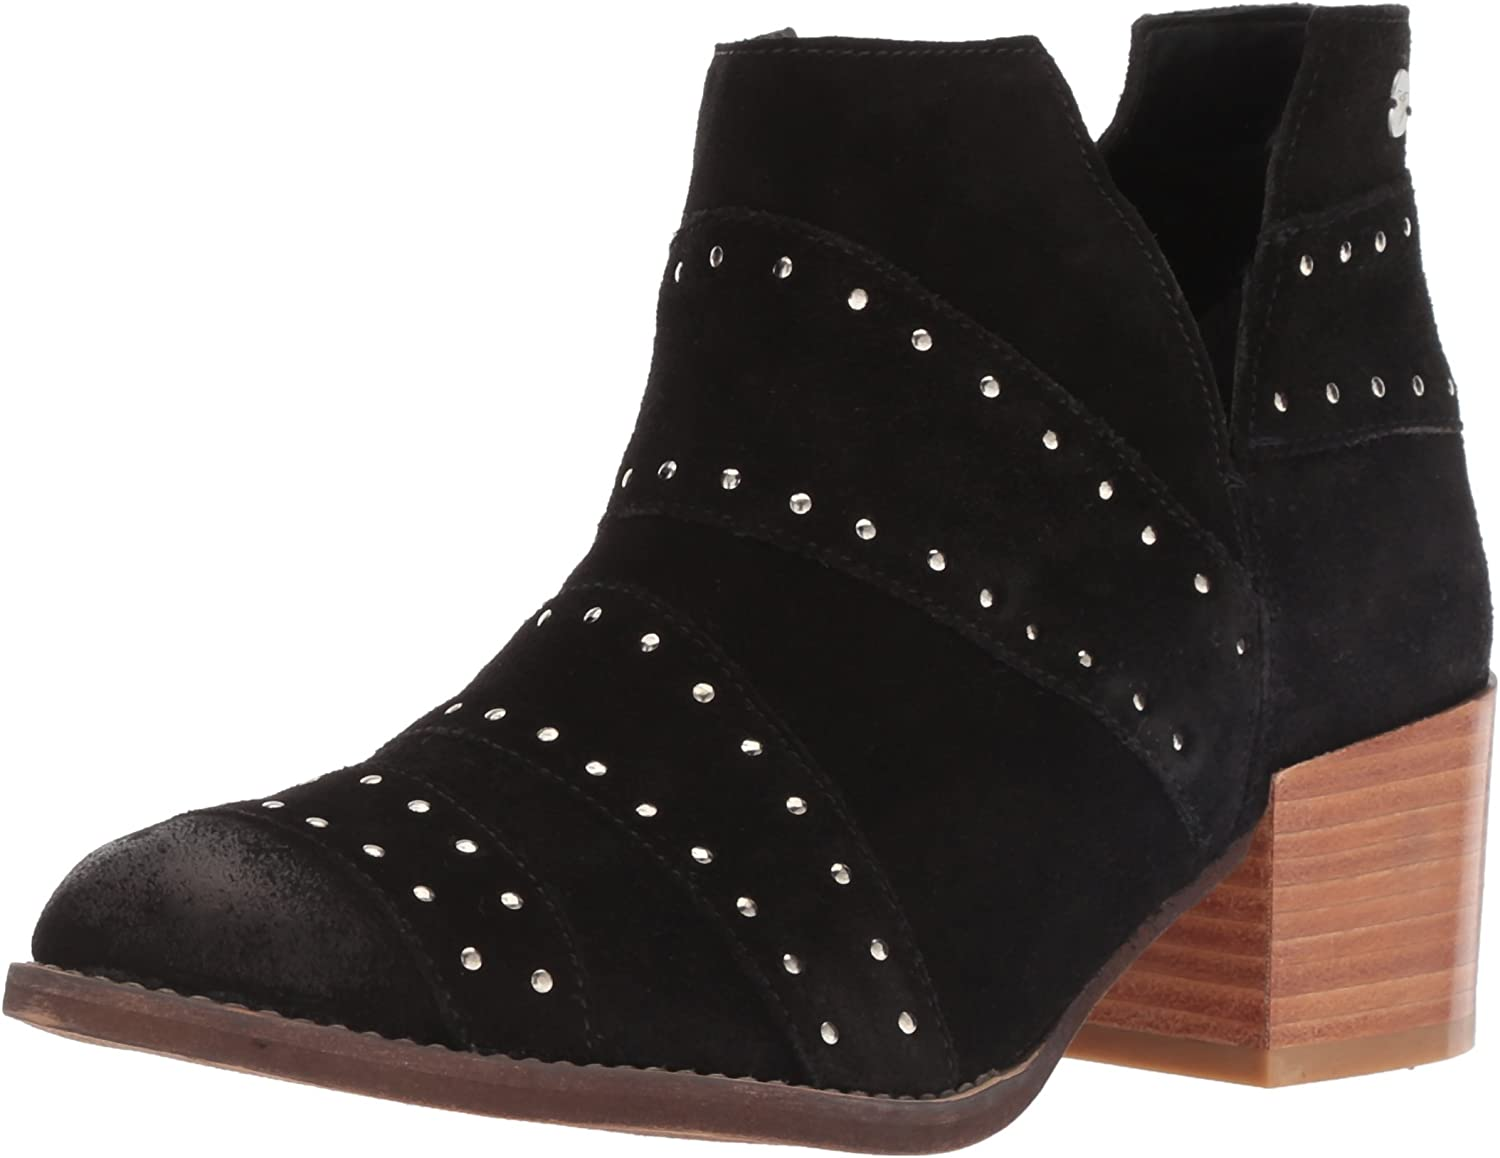 Roxy Womens Lexie Suede Fashion Boot Ankle Boot